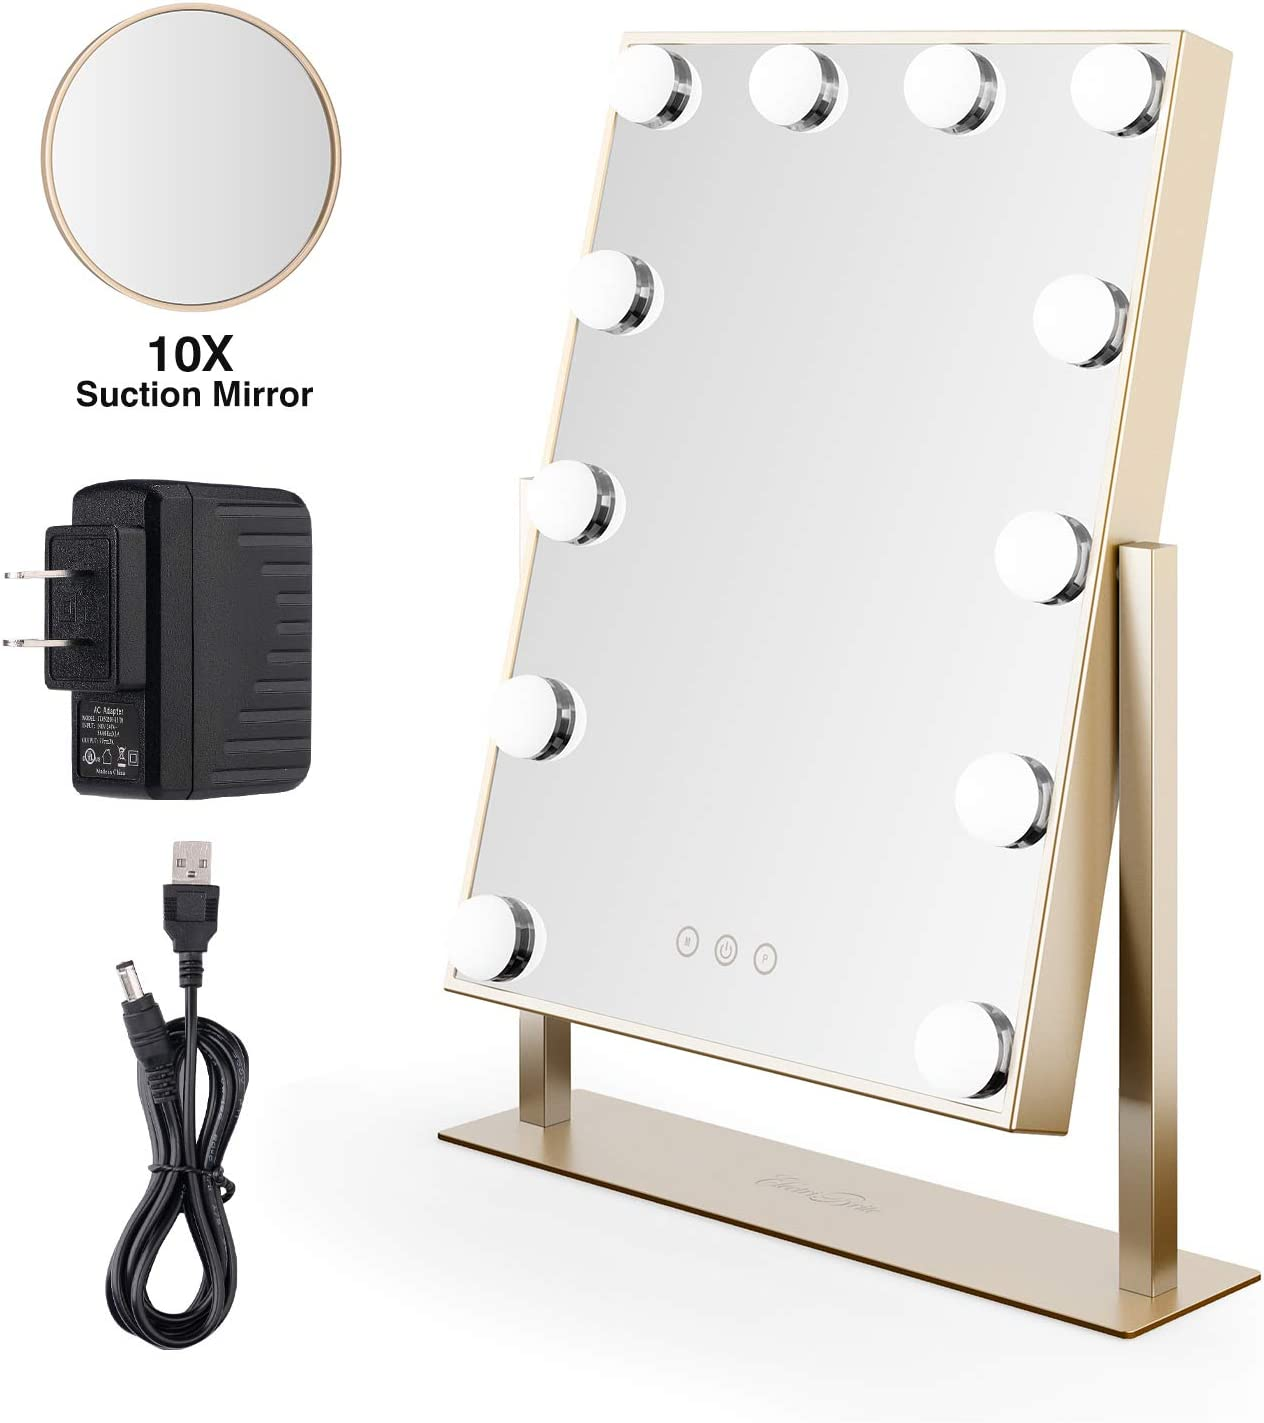 Hollywood Makeup Mirror with Lights - LED Lighted Makeup Vanity Mirror, Smart Touch Control 3 Color Mode Dimmable Light-up Cosmetic Mirror with 10X magnification, 12x3W/UL Plug Power Supply